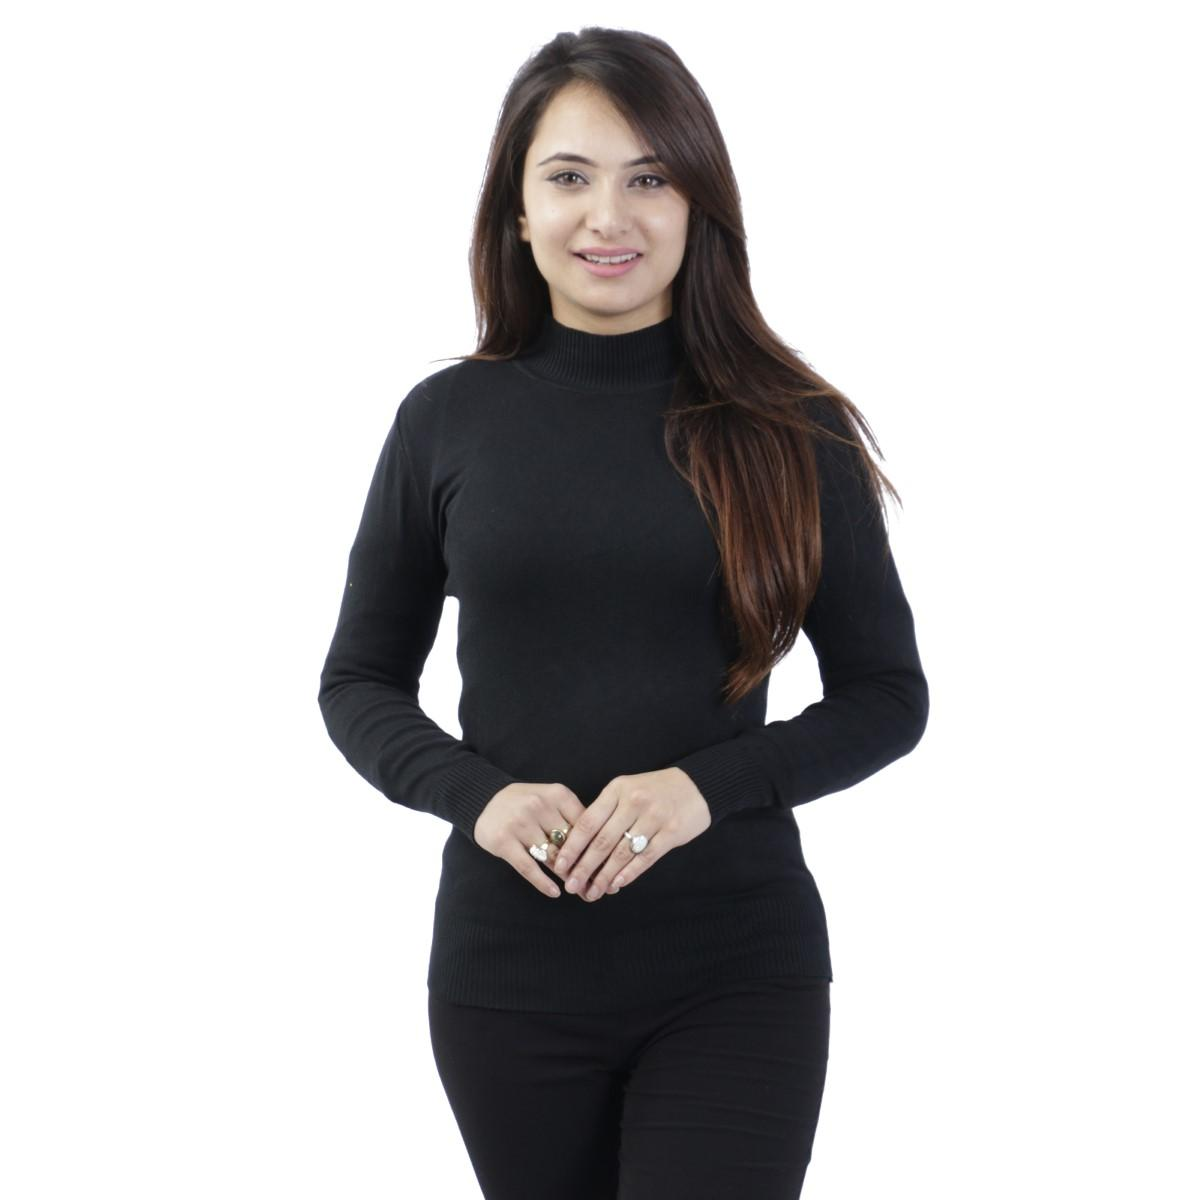 f8644b1cb3 Women's Sweaters Price in Nepal - Buy Cardigans For Women Online ...